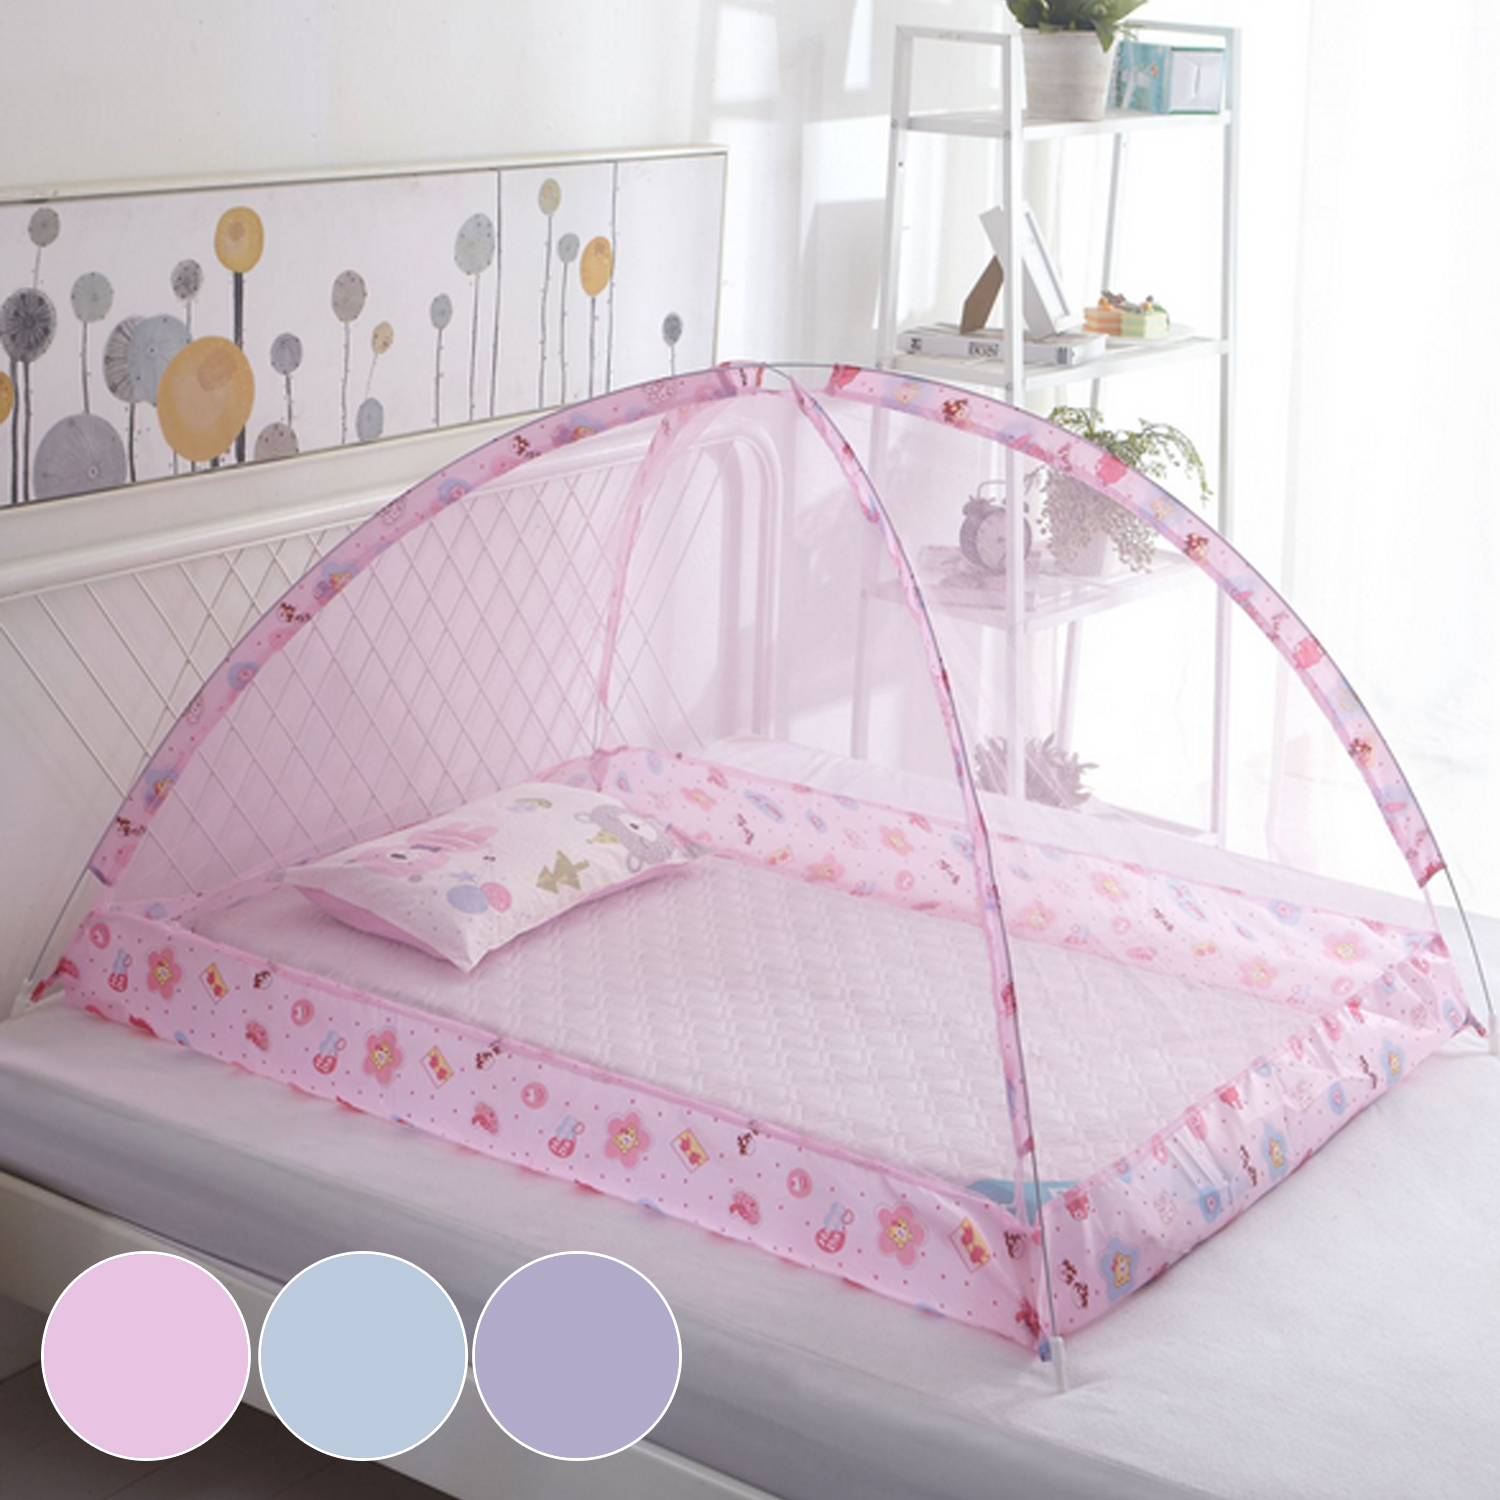 Aliexpress Com Buy Baby Bed Mosquito Net Portable